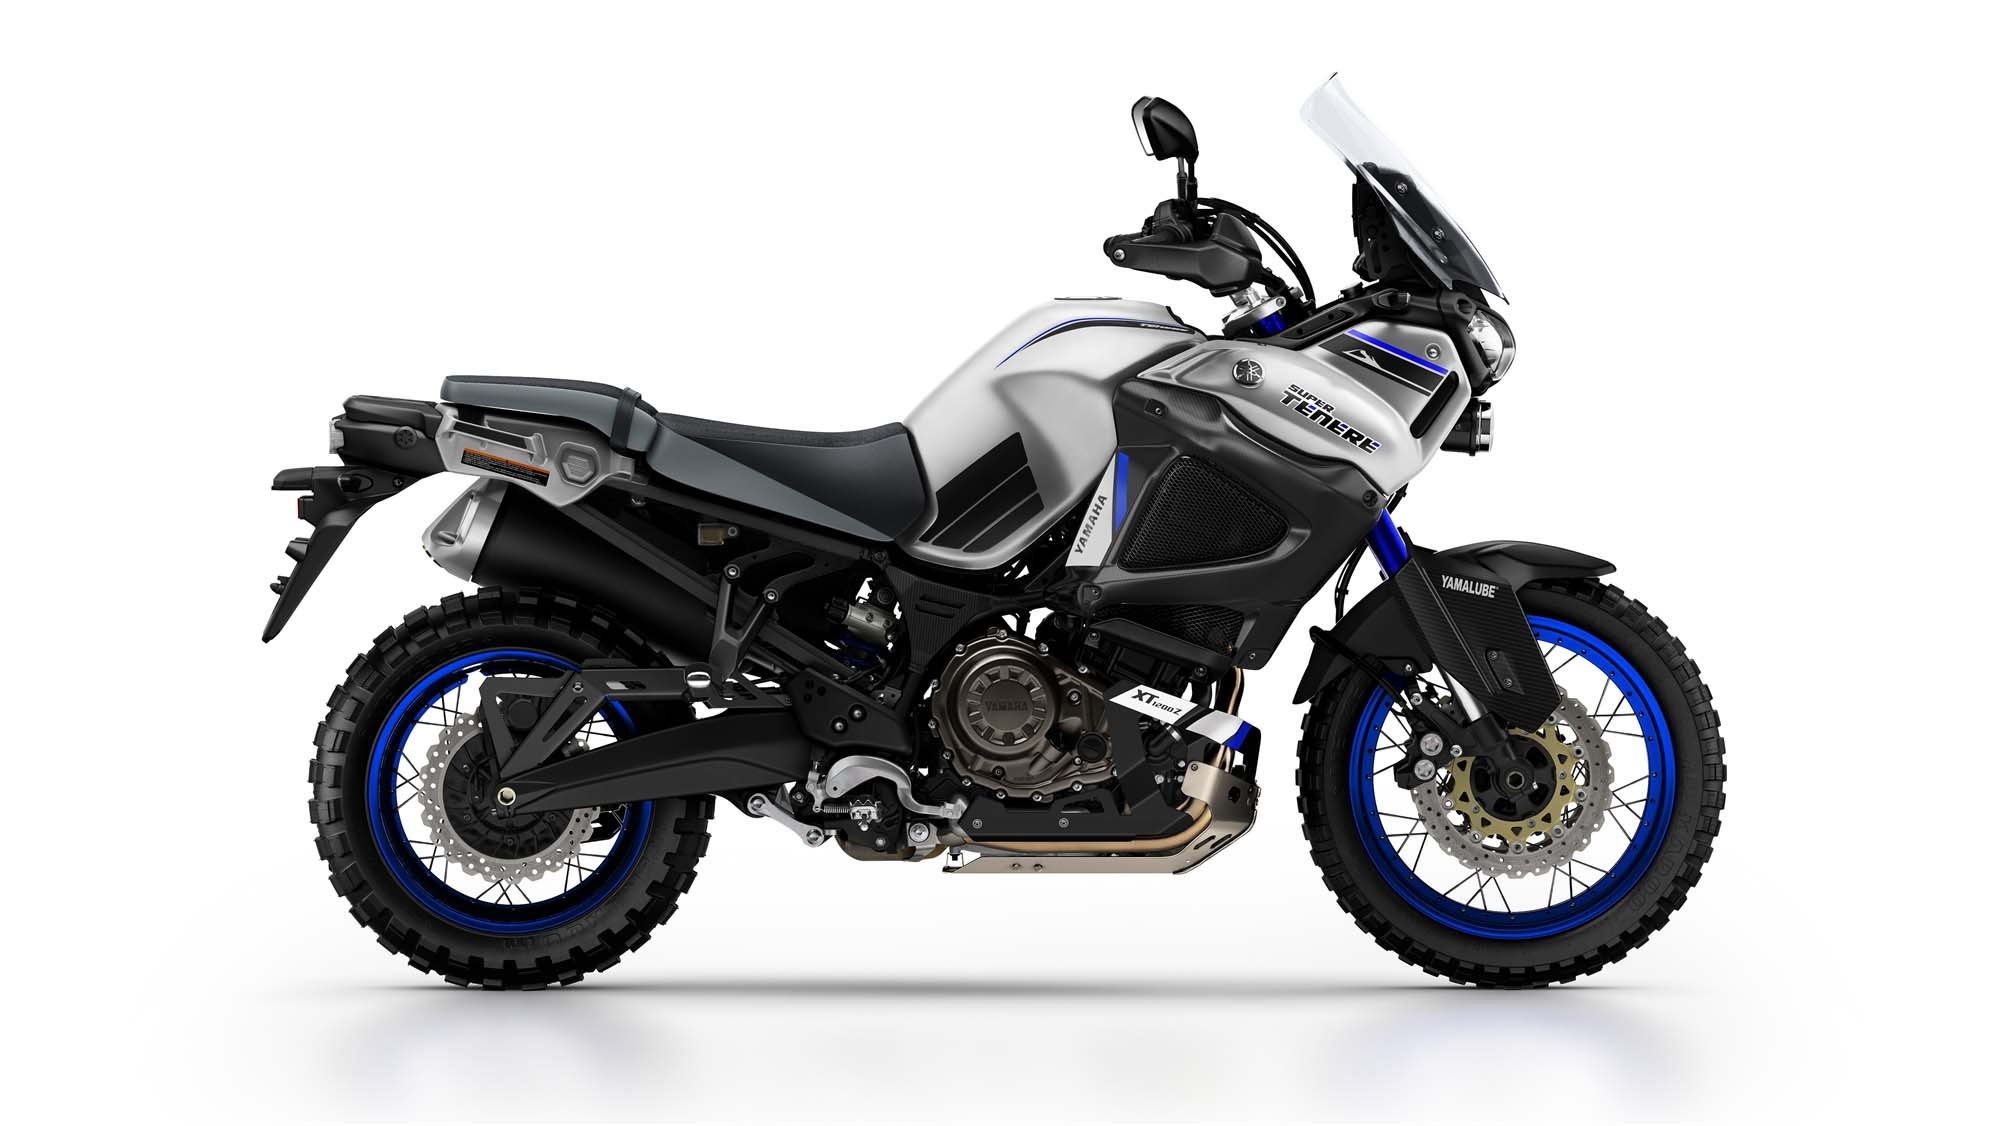 yamaha xt 1200 z super t n r world crosser bilder und technische daten. Black Bedroom Furniture Sets. Home Design Ideas